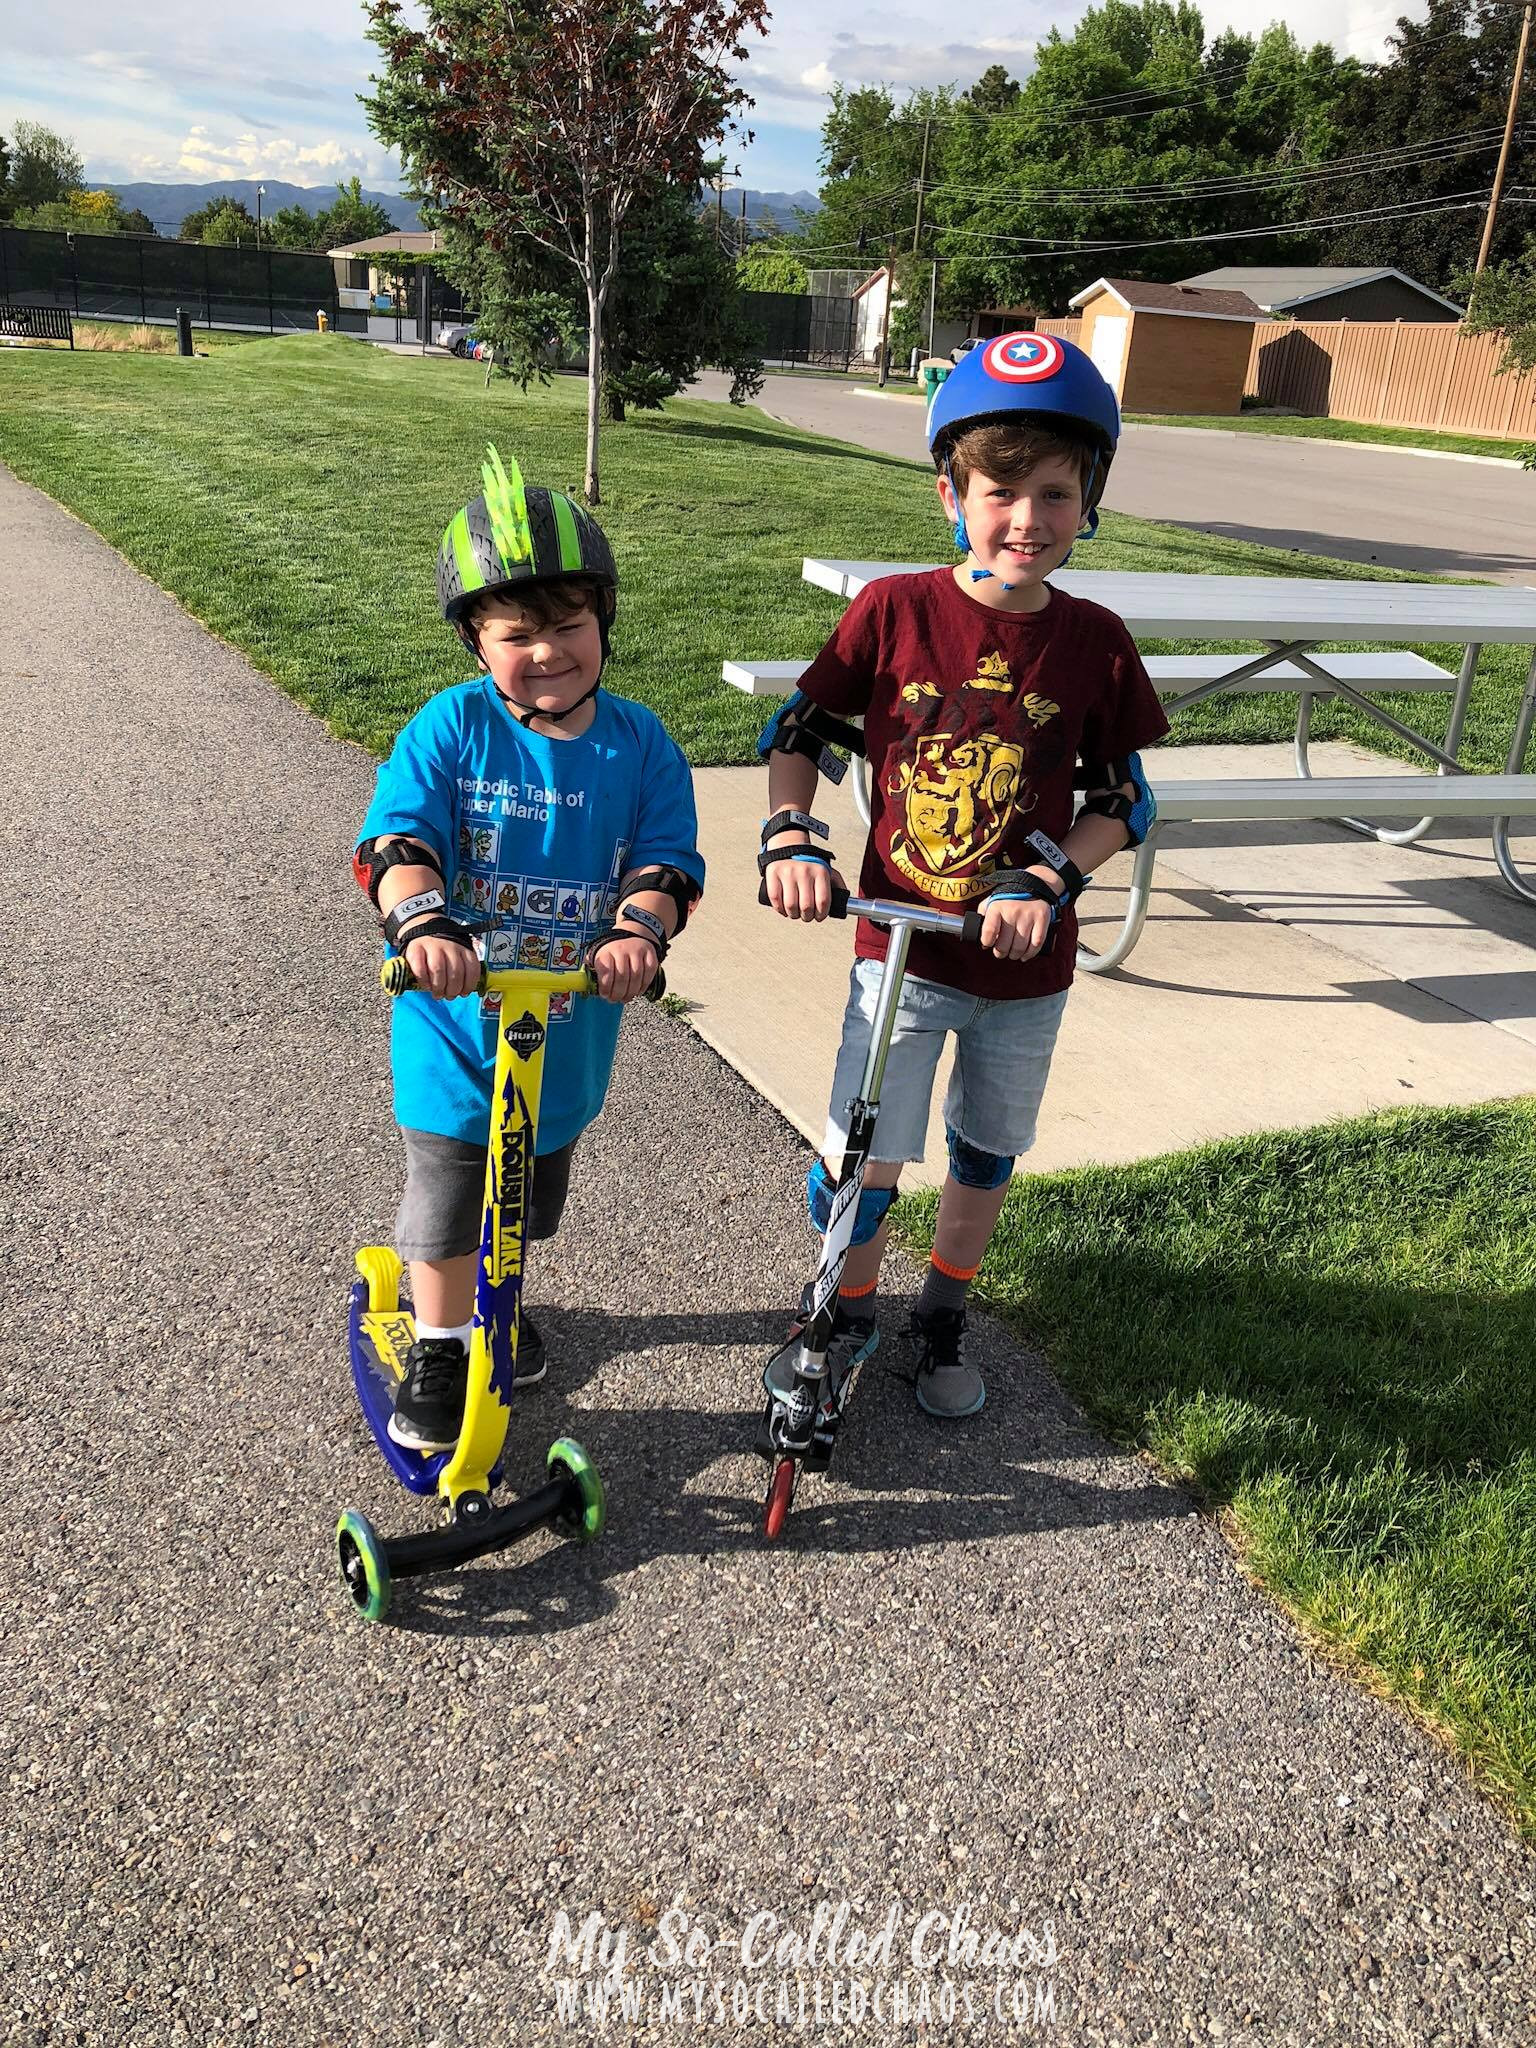 Two boys riding scooters at the park, wearing helmets and elbow/knee pads.